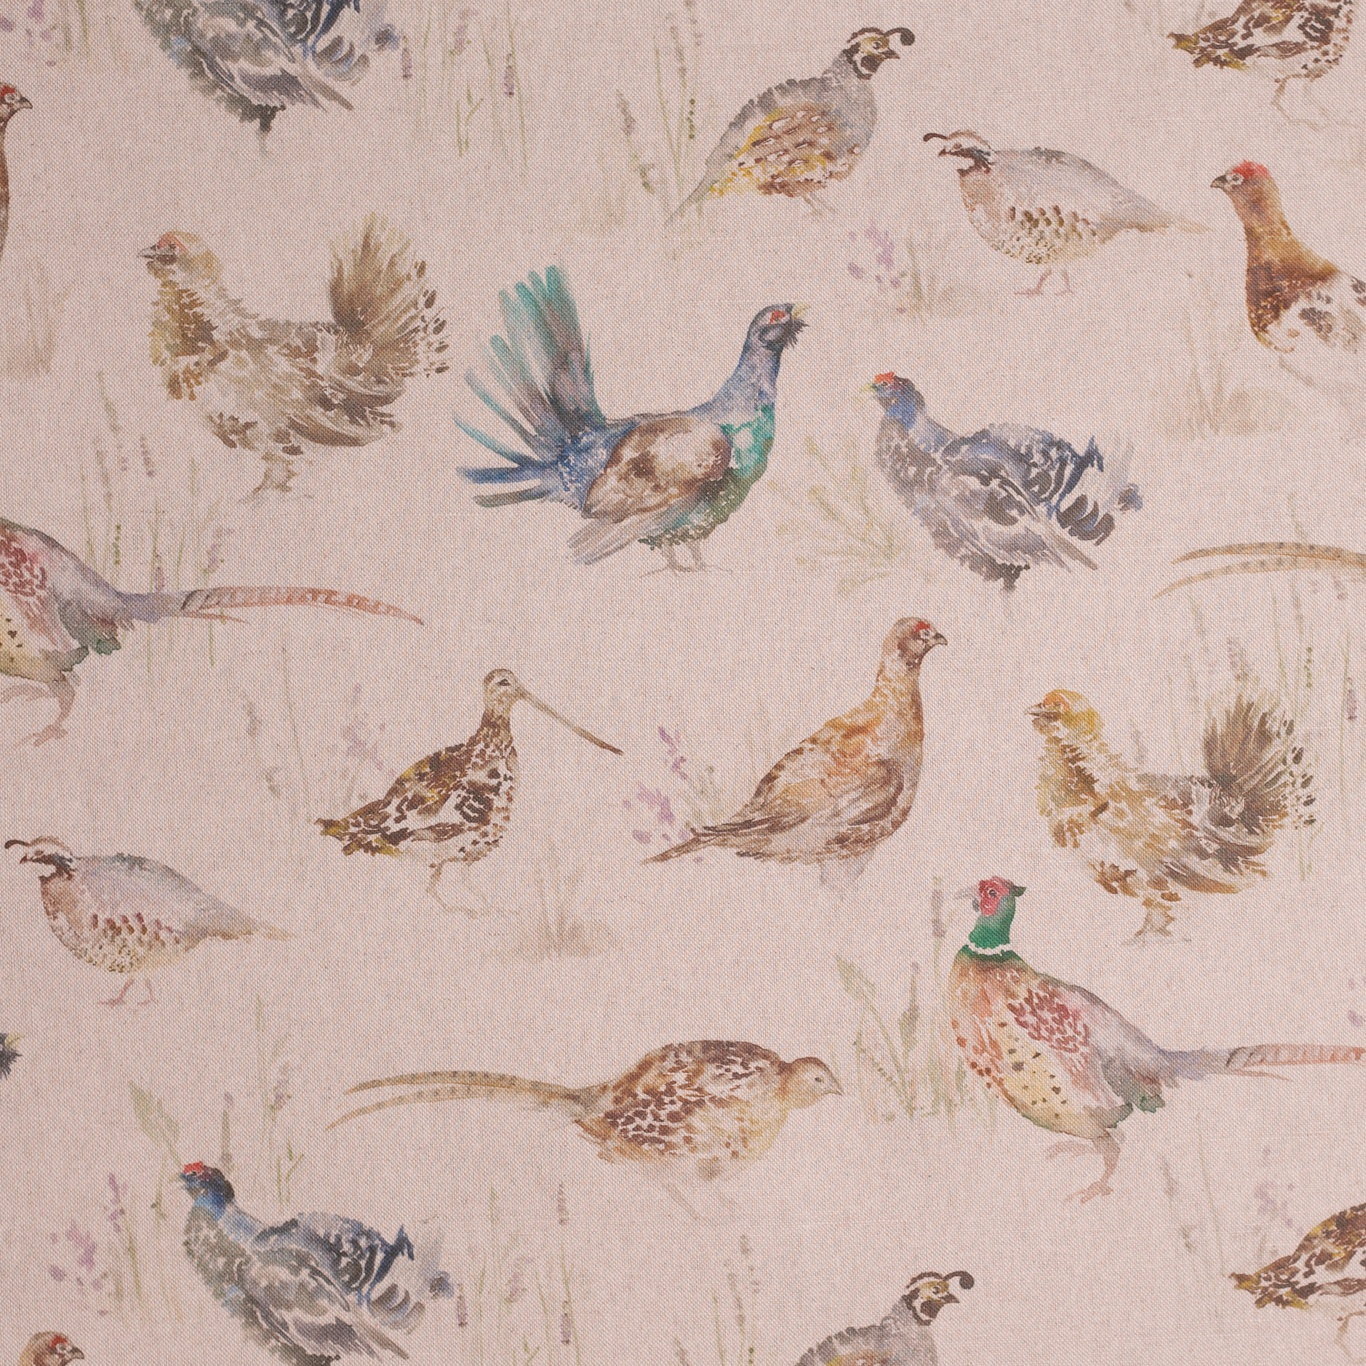 Image of Voyage Game Birds Linen Small Fabric 3m Remnant